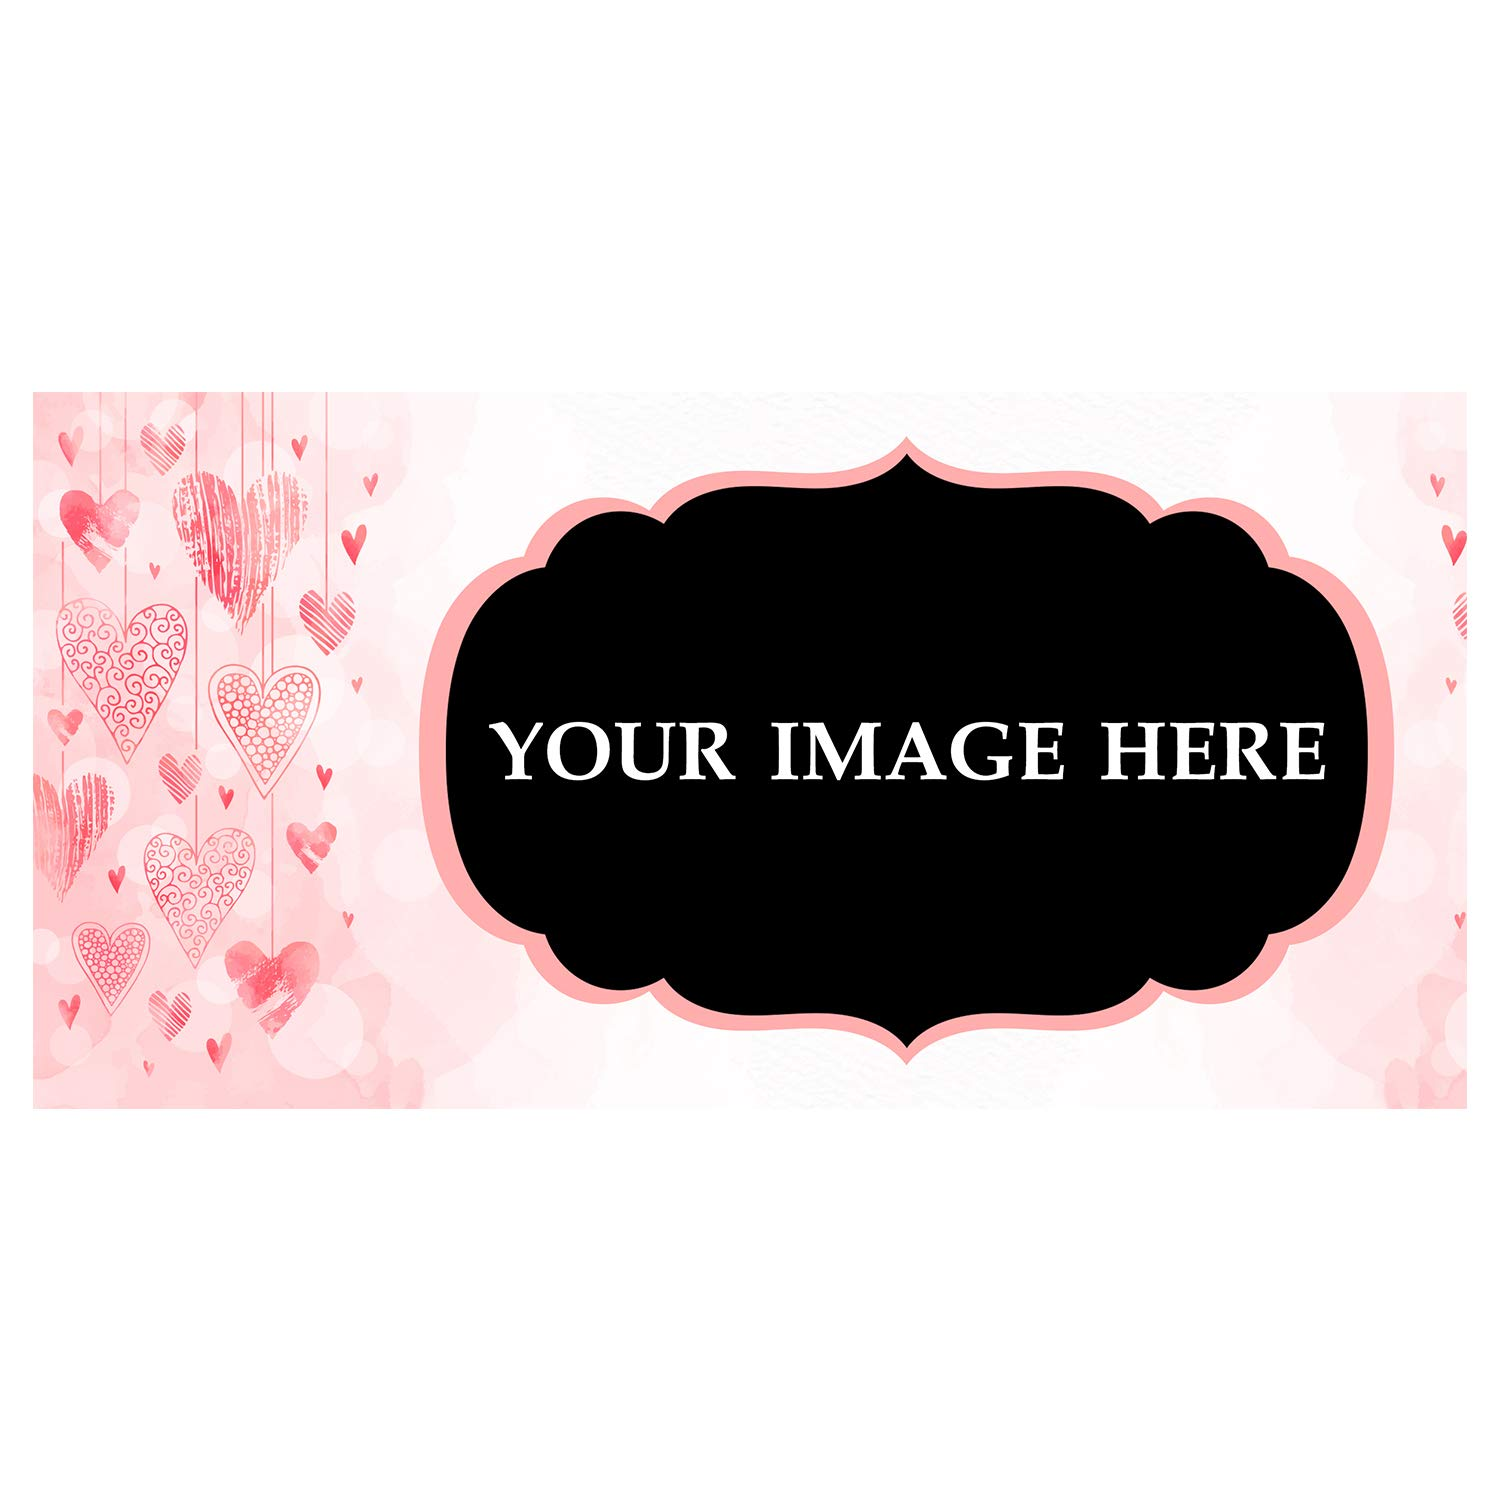 BANNER BUZZ MAKE IT VISIBLE Custom Magnetic Picture Pocket Frame, Self-Adhesive Pocket Photo Magnets for Refrigerator, Valentine Day Gifts & More (12'' X 24'')